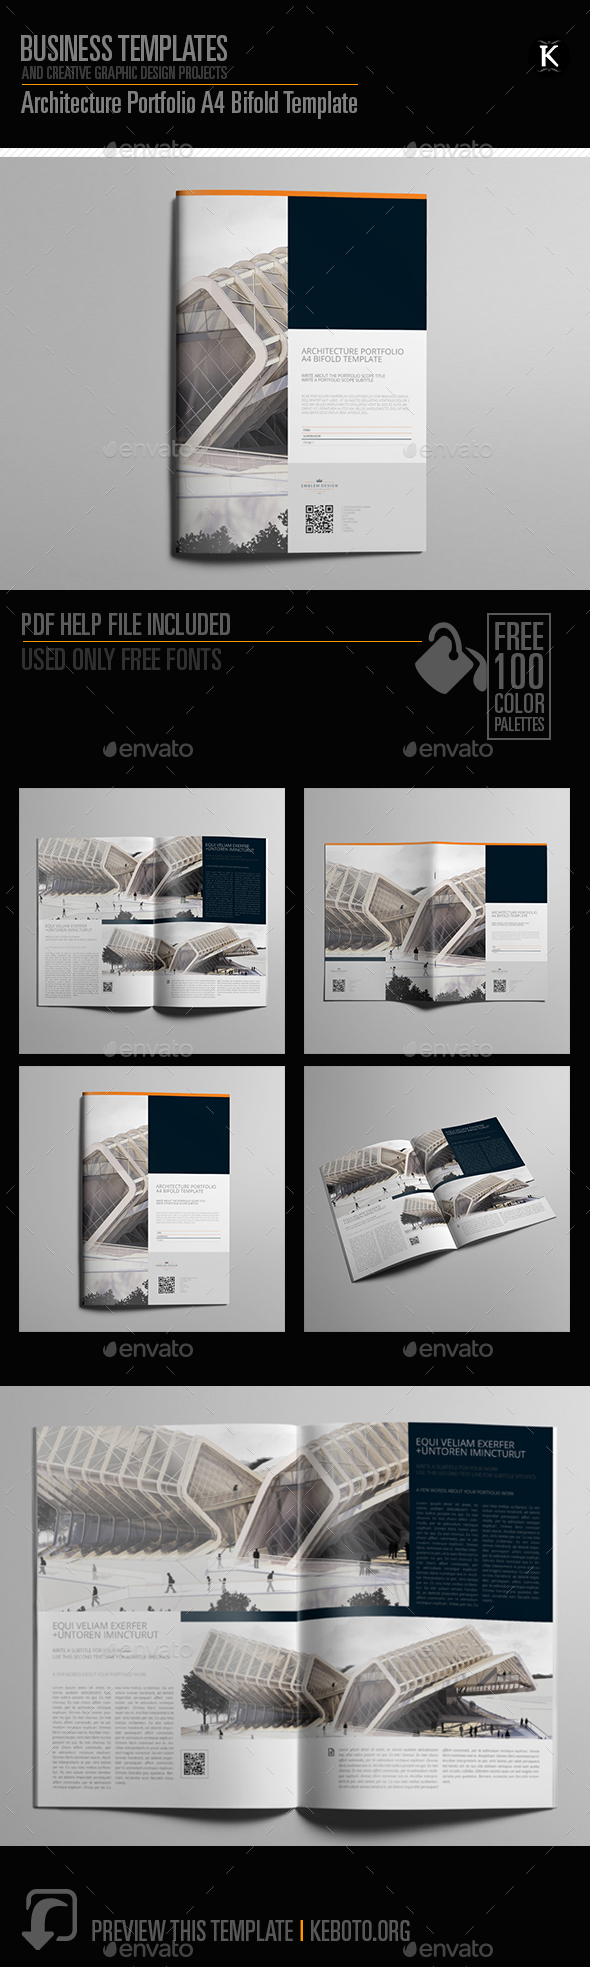 architecture portfolio a4 bifold template by keboto graphicriver. Black Bedroom Furniture Sets. Home Design Ideas